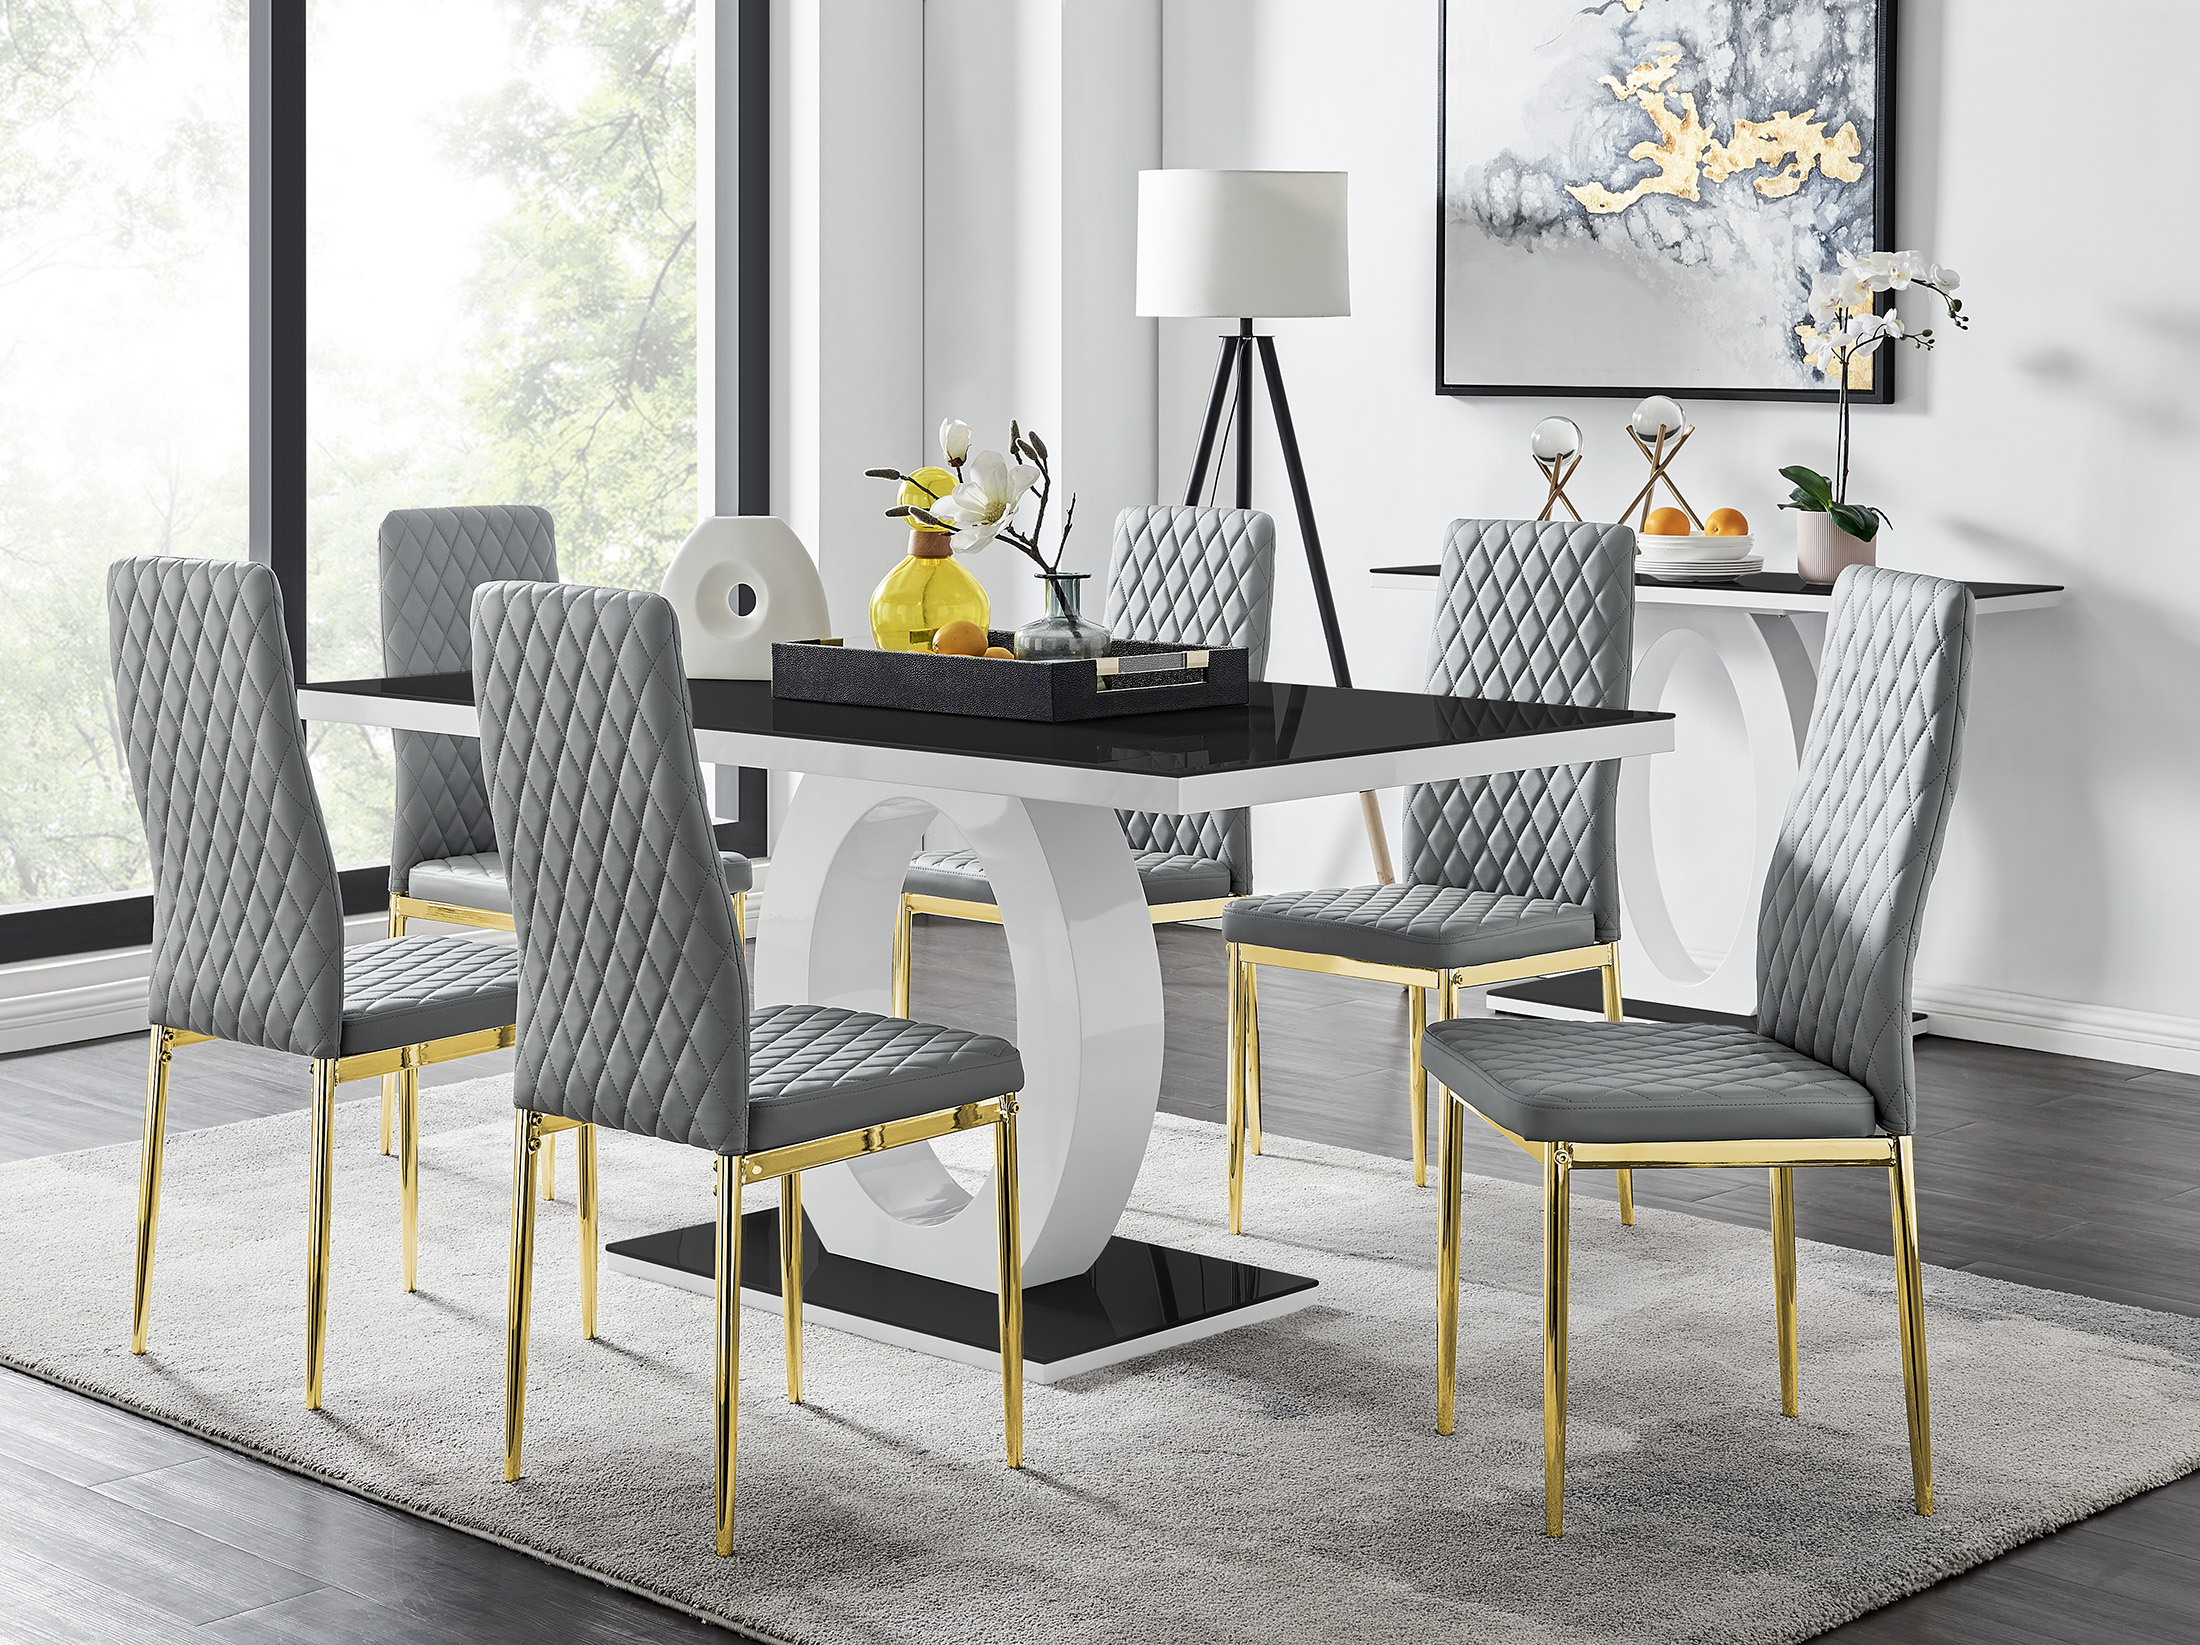 Giovani Black Dining Table 6 Milan, Black Dining Table Chairs Set Of 6